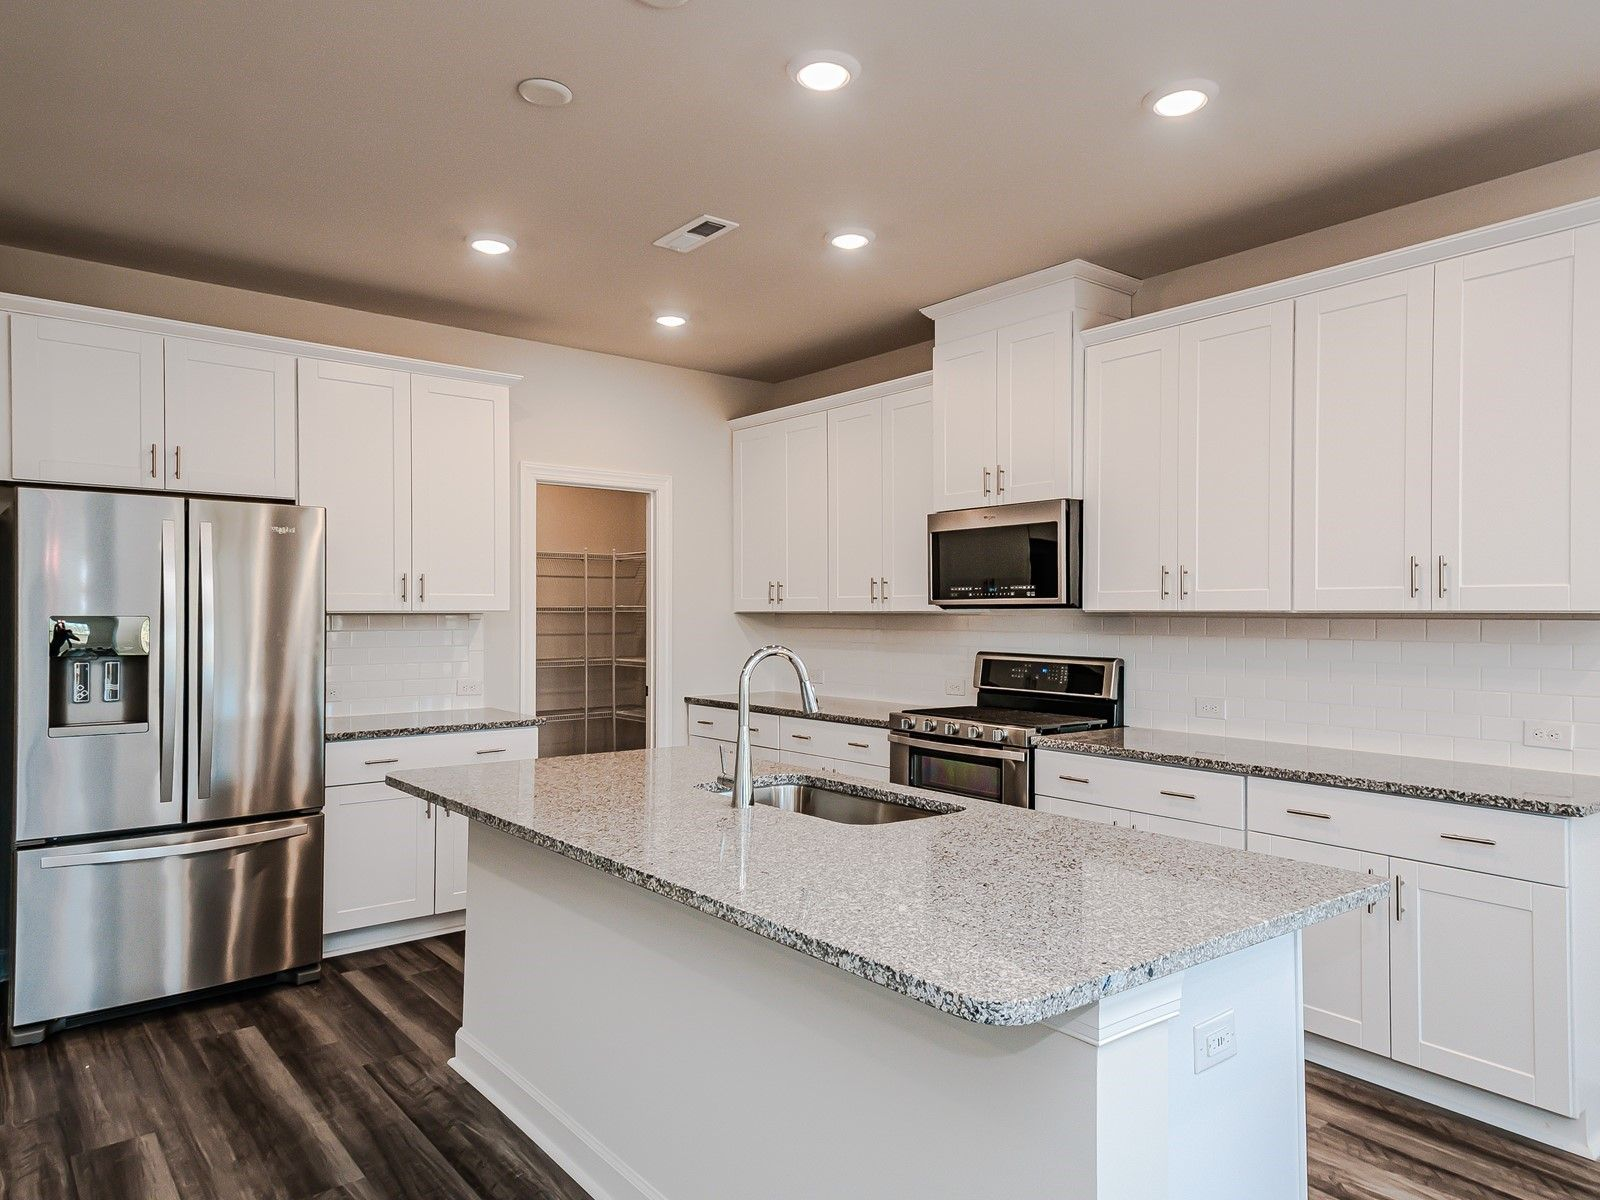 Kitchen featured in the Sherwood By Meritage Homes in Charlotte, NC